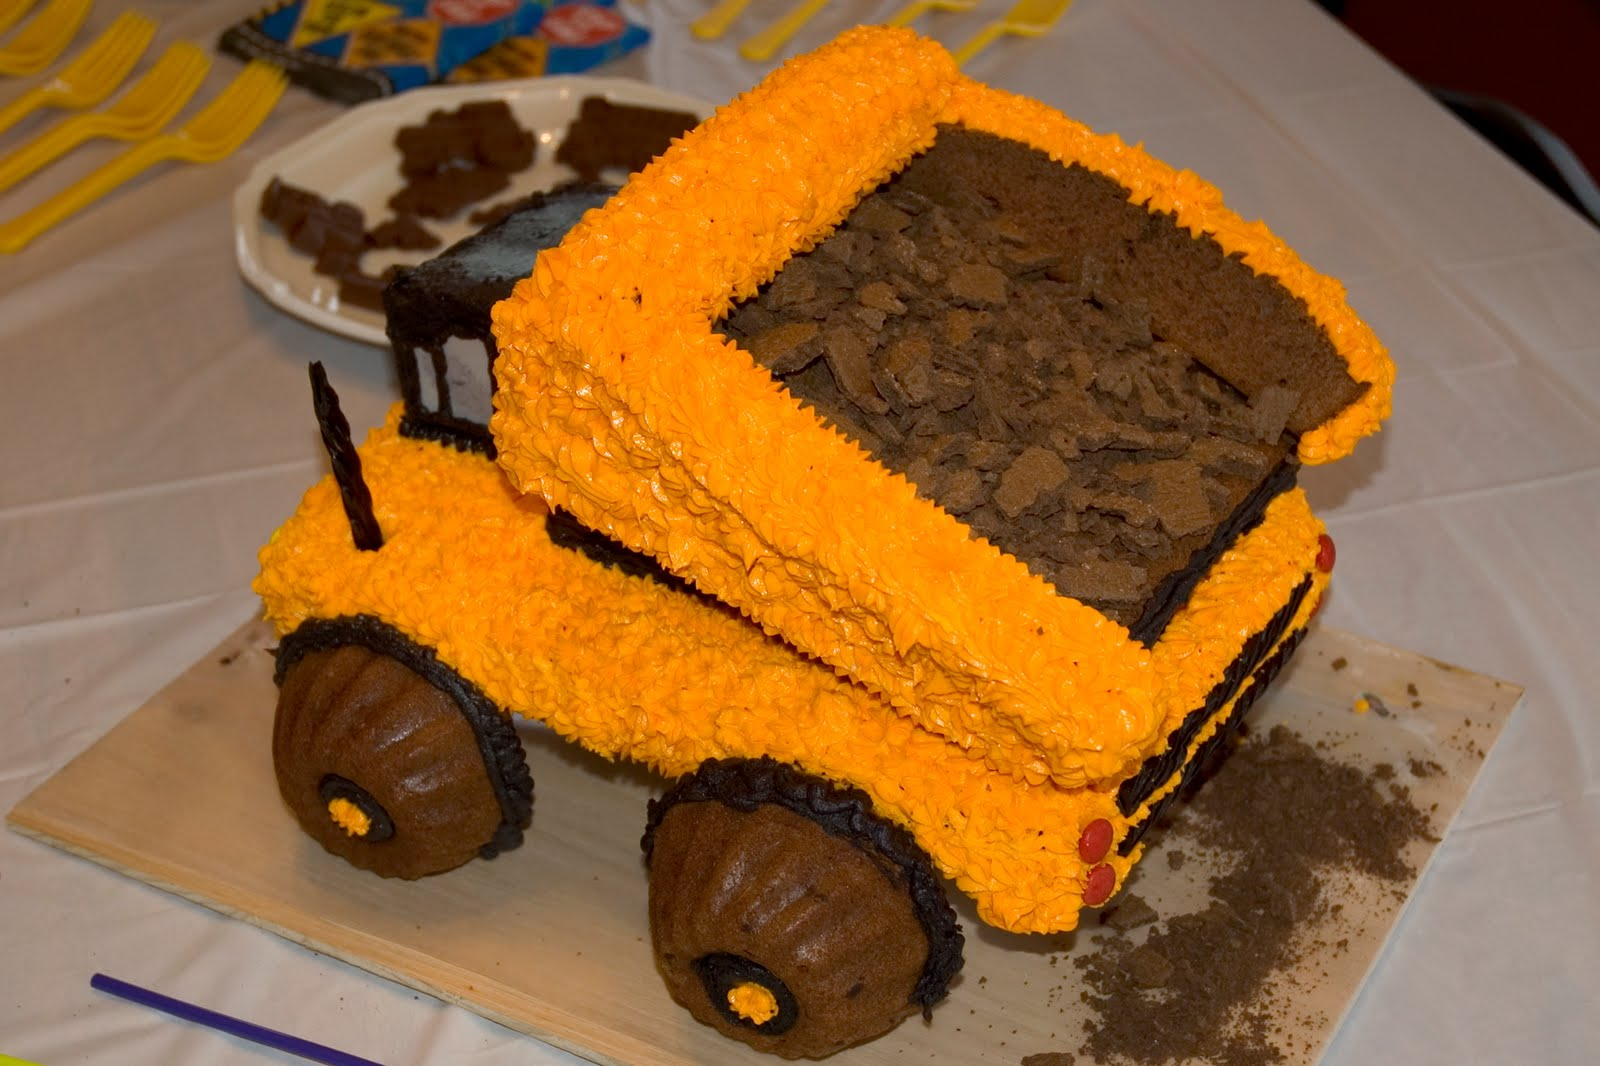 Awesome 5 Dump Trucks With Cakes Photo Dump Truck Cake Dump Truck Funny Birthday Cards Online Elaedamsfinfo